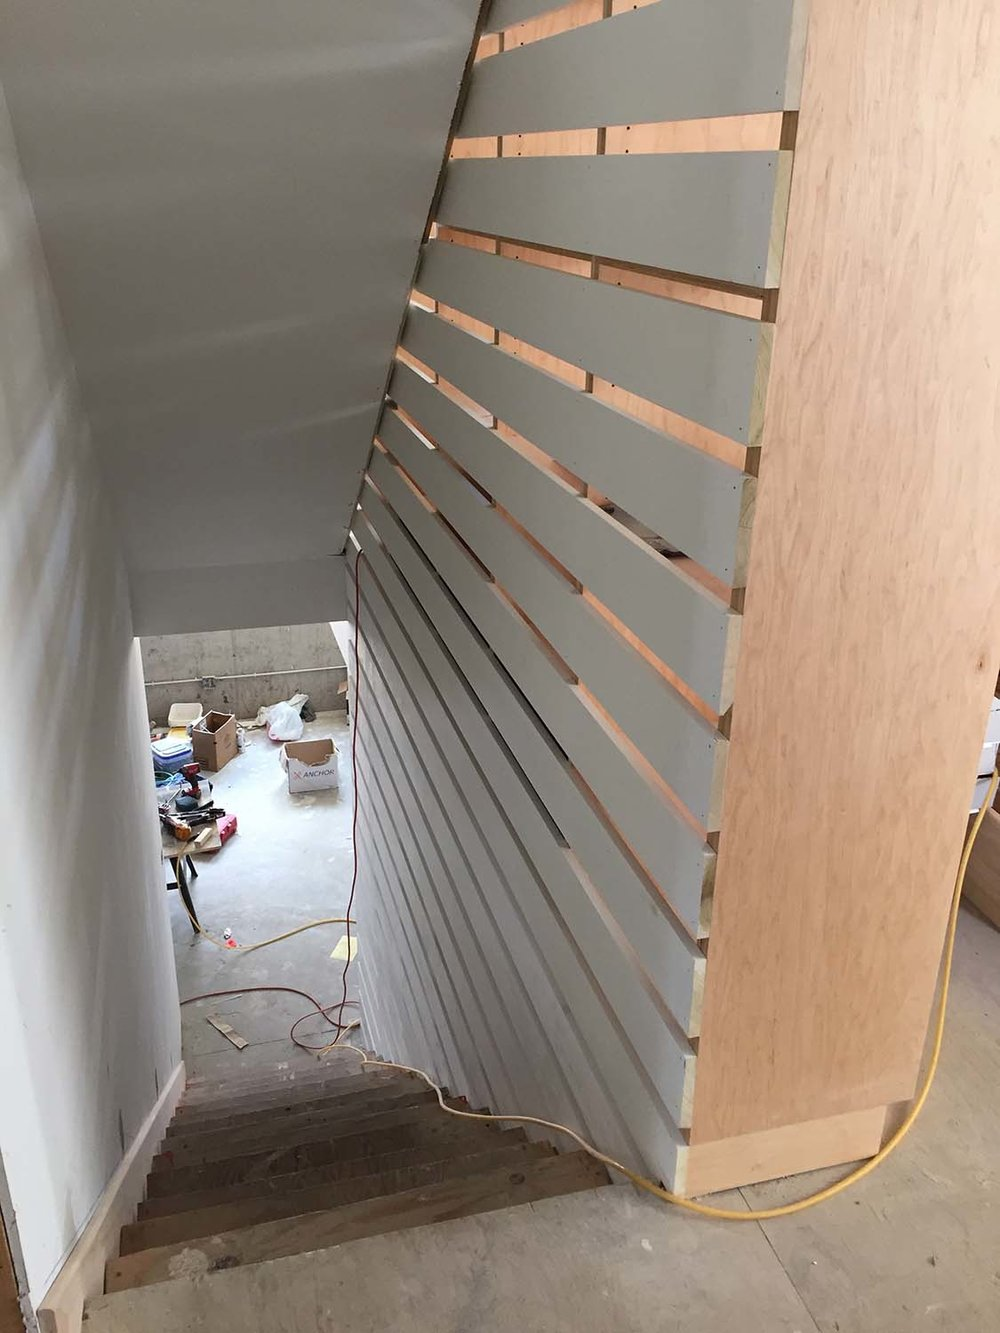 This image shows the slats alongside the stairwell.  They are continuous from the basement through the top level, providing the code-mandated barrier while allowing peek-a-boo glimpses through it.